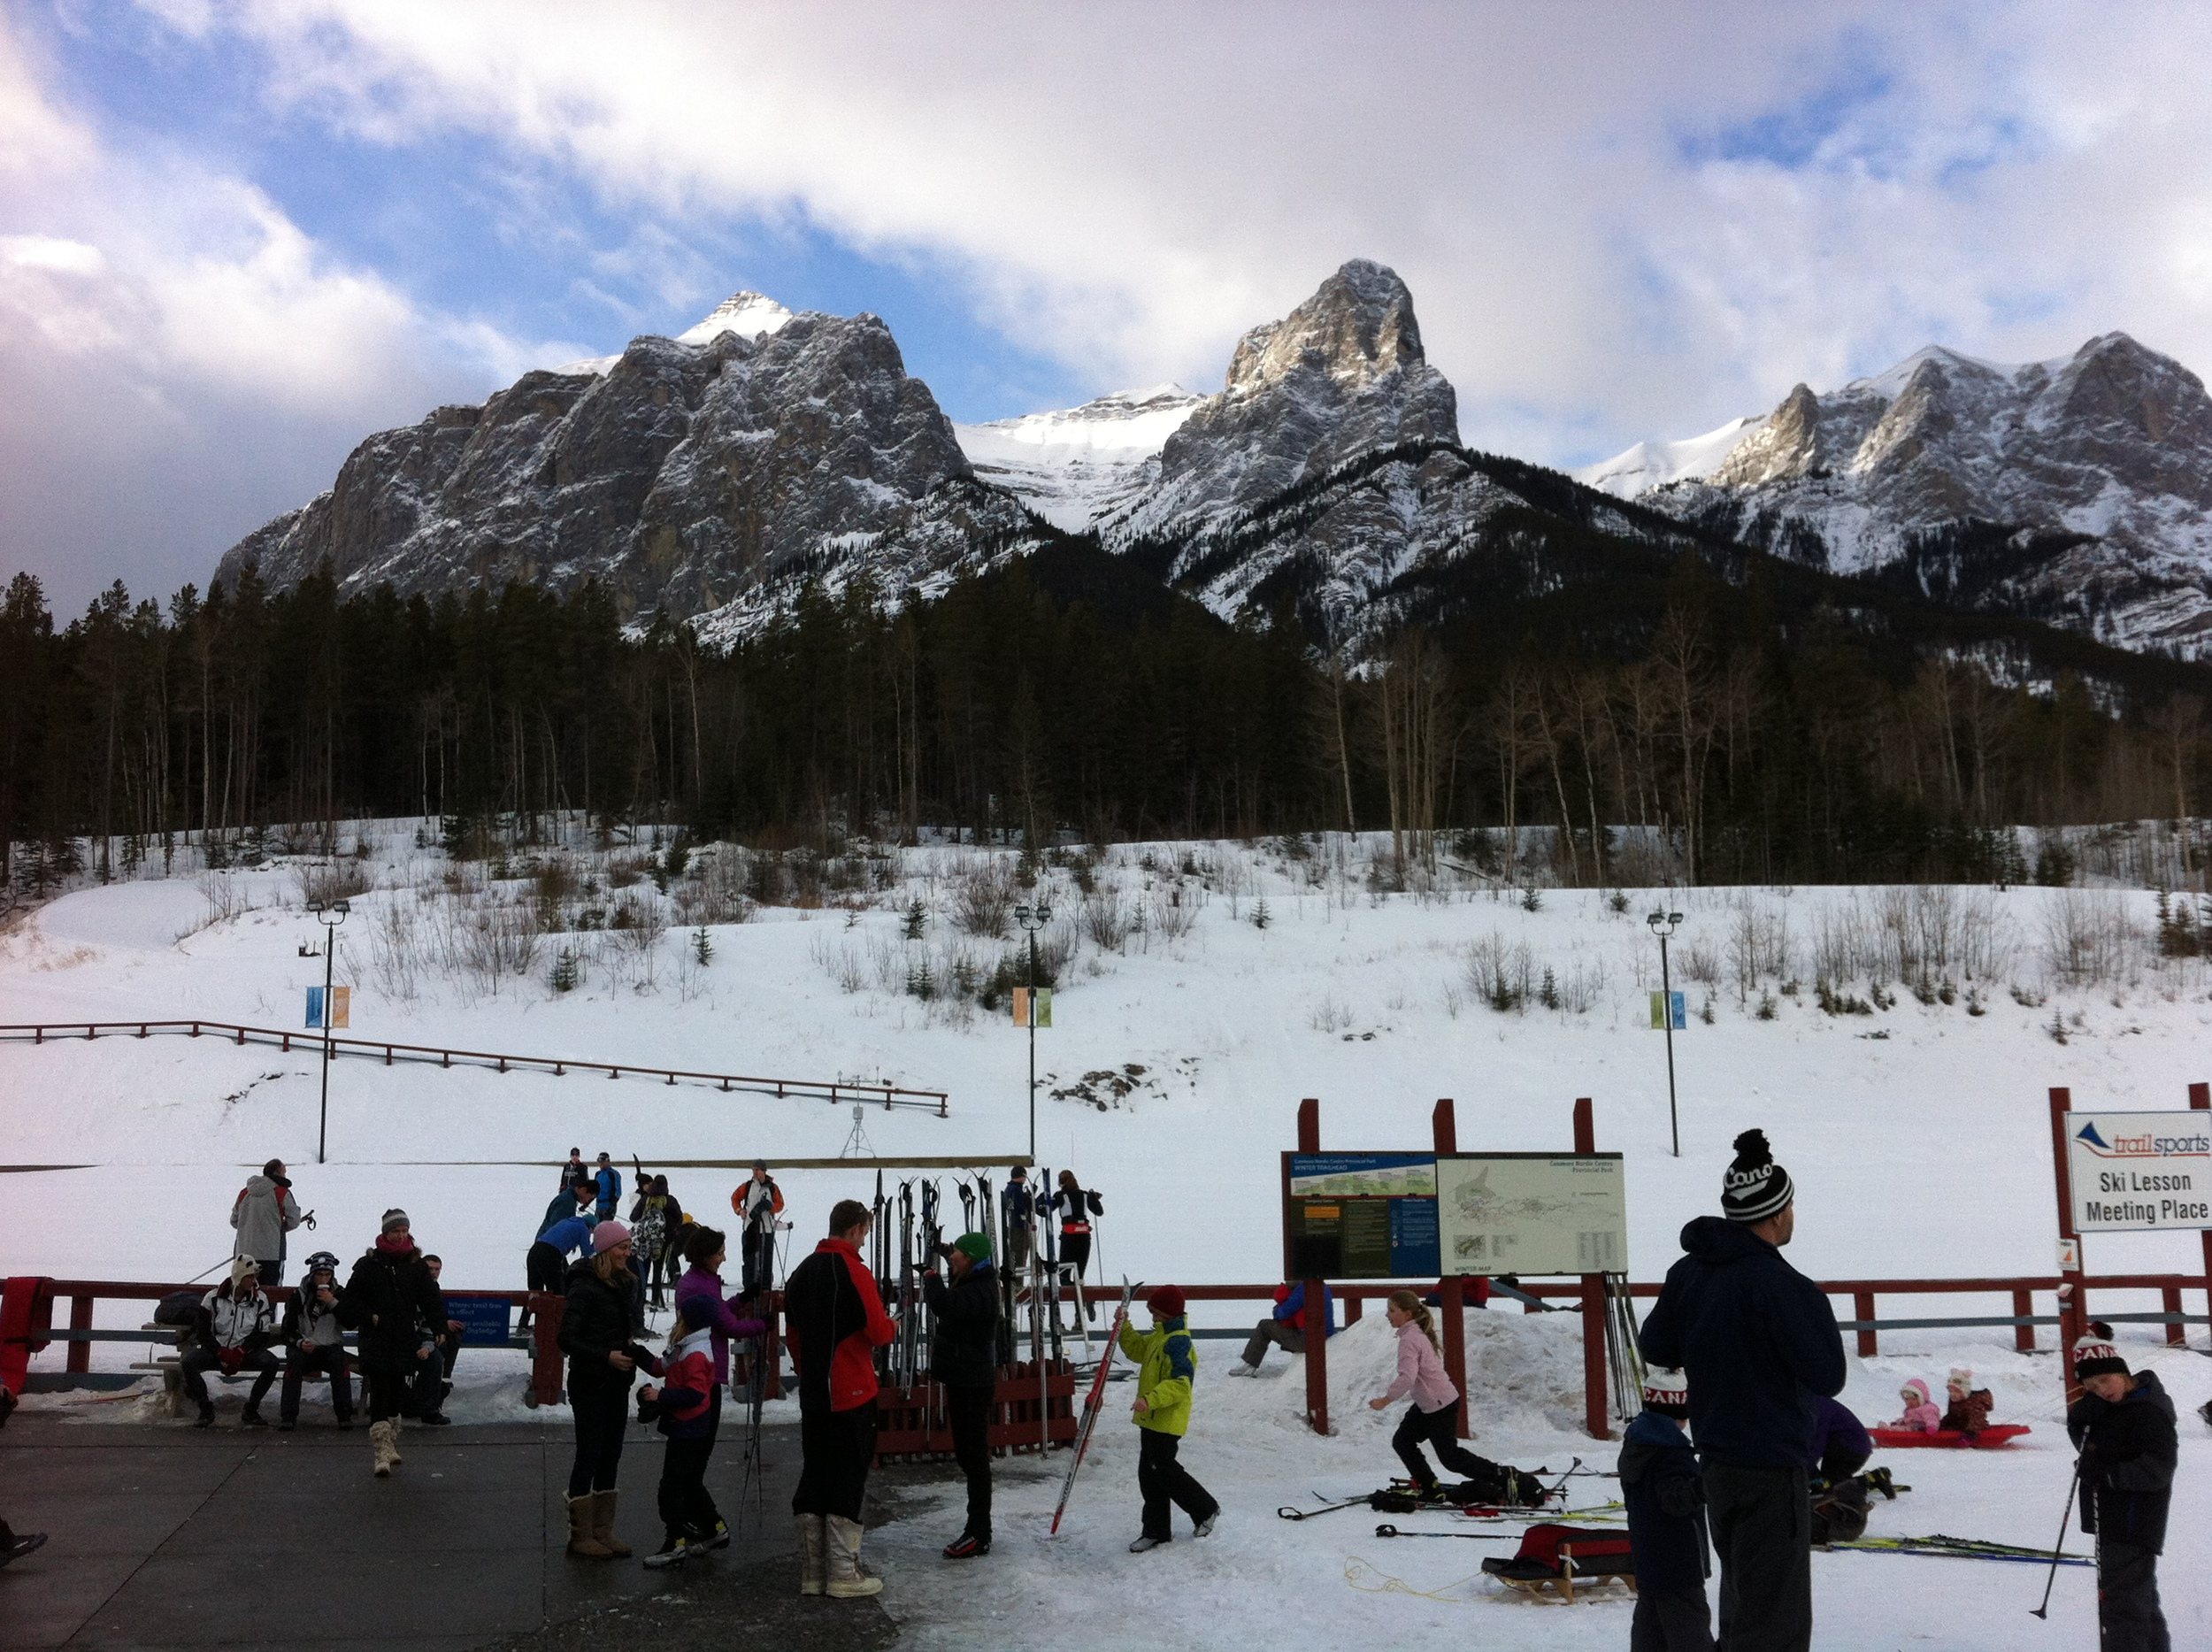 The Canmore Nordic Centre was a winter wonderland for cross country skiers but we were just looking for a place to go for a walk.